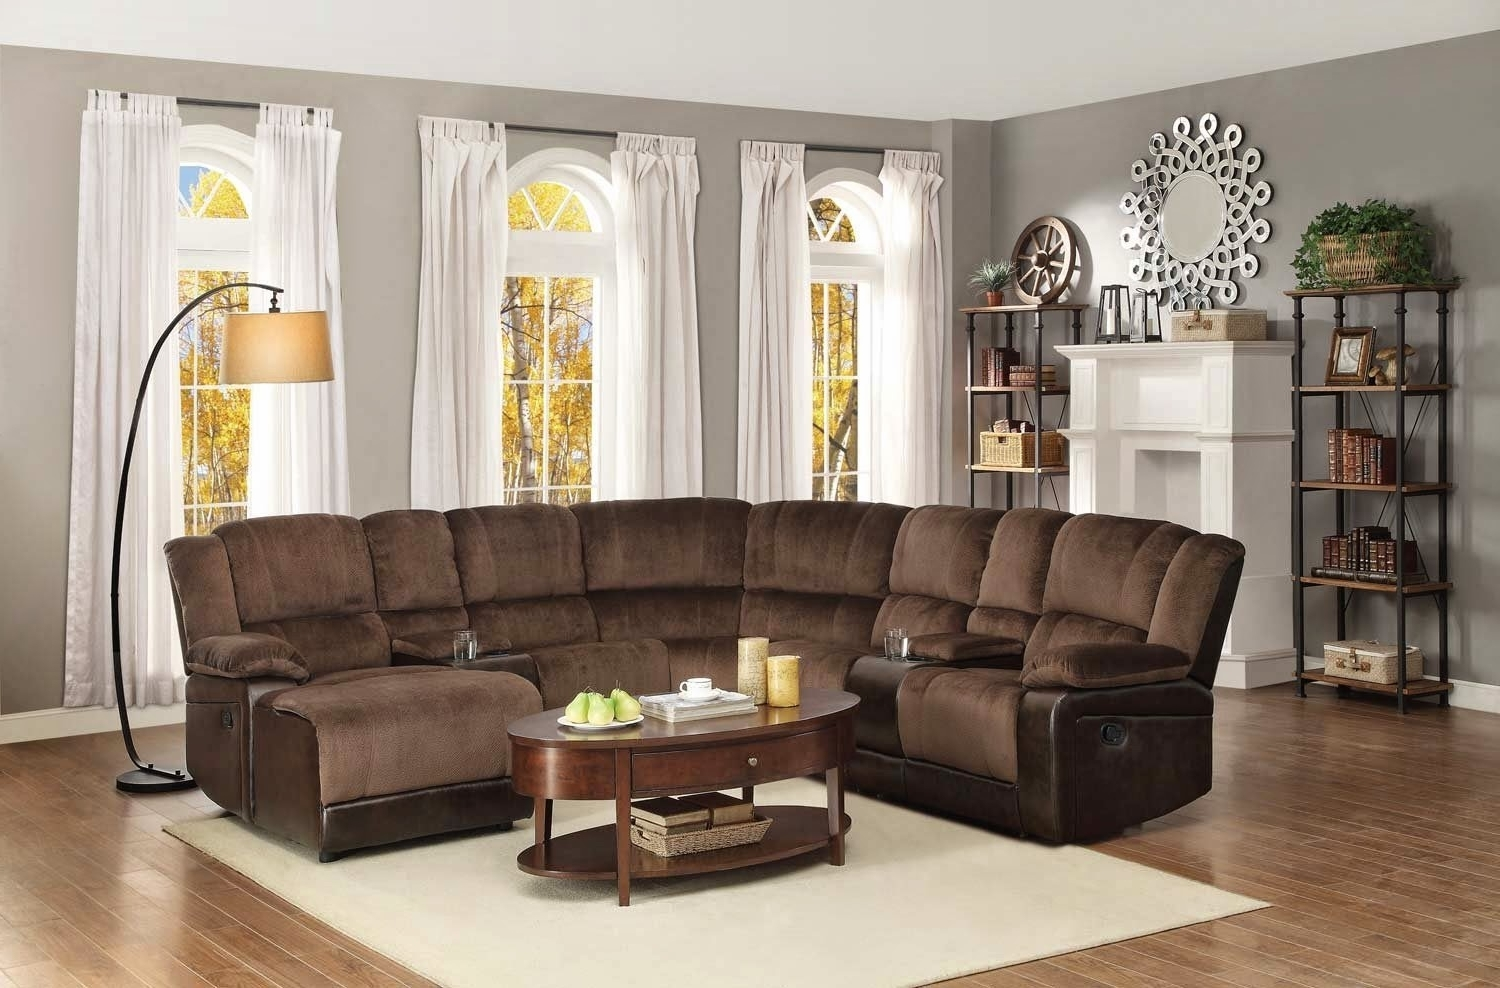 Recent Curved Sectional Sofas With Recliner In Leather Sectional Sofa With Power Recliner Sectionals Sofas Softy (View 11 of 15)